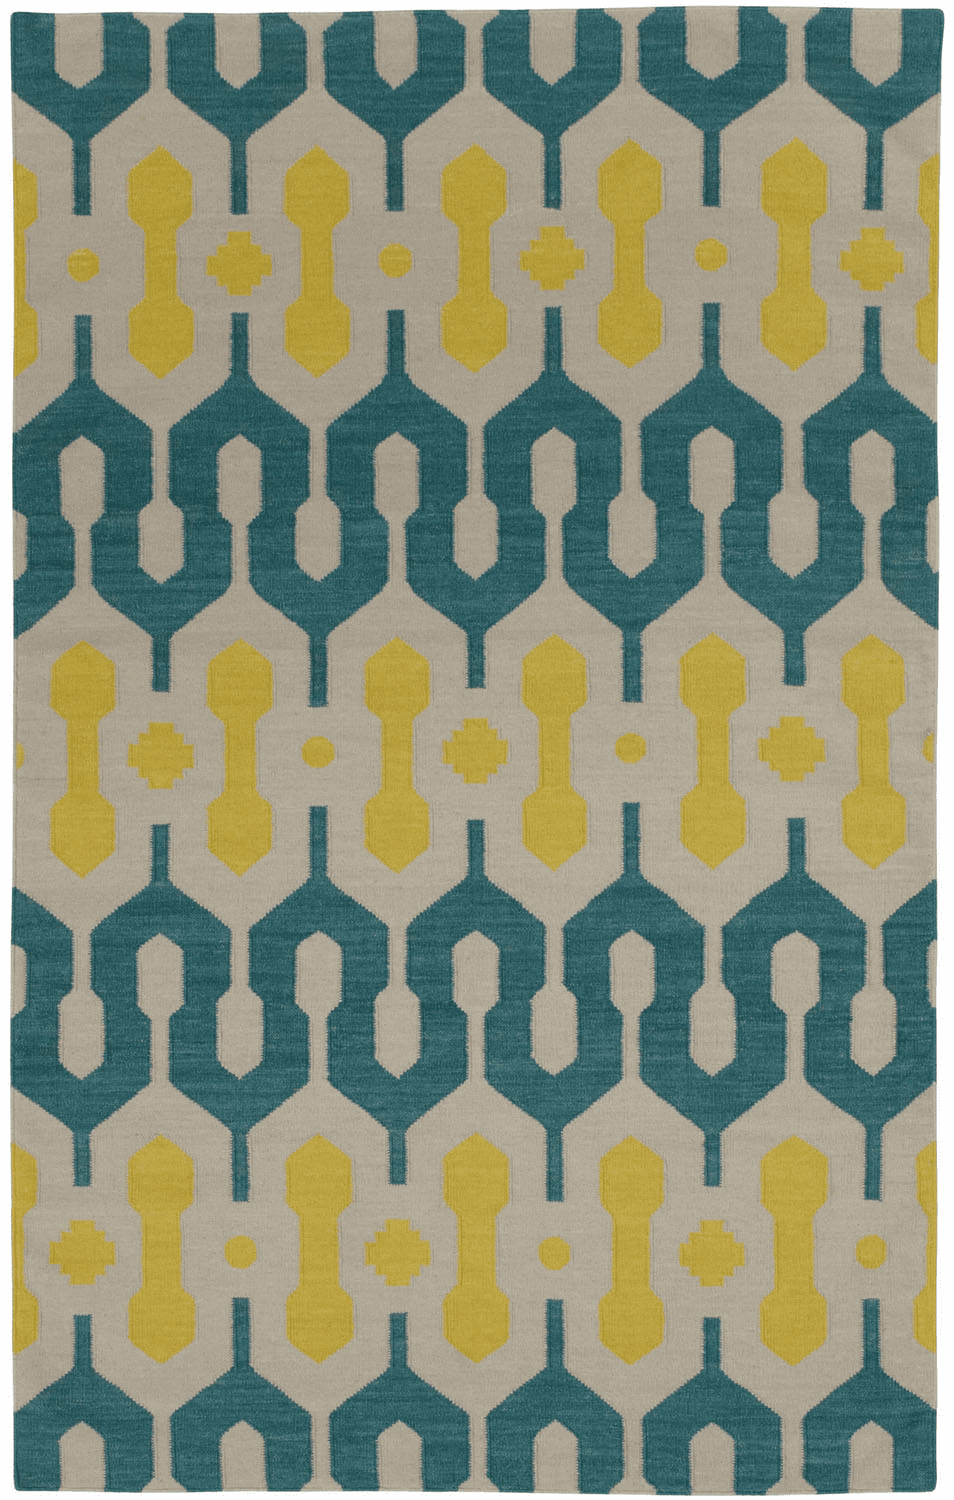 Flat Woven Blue Green Yellow Rug